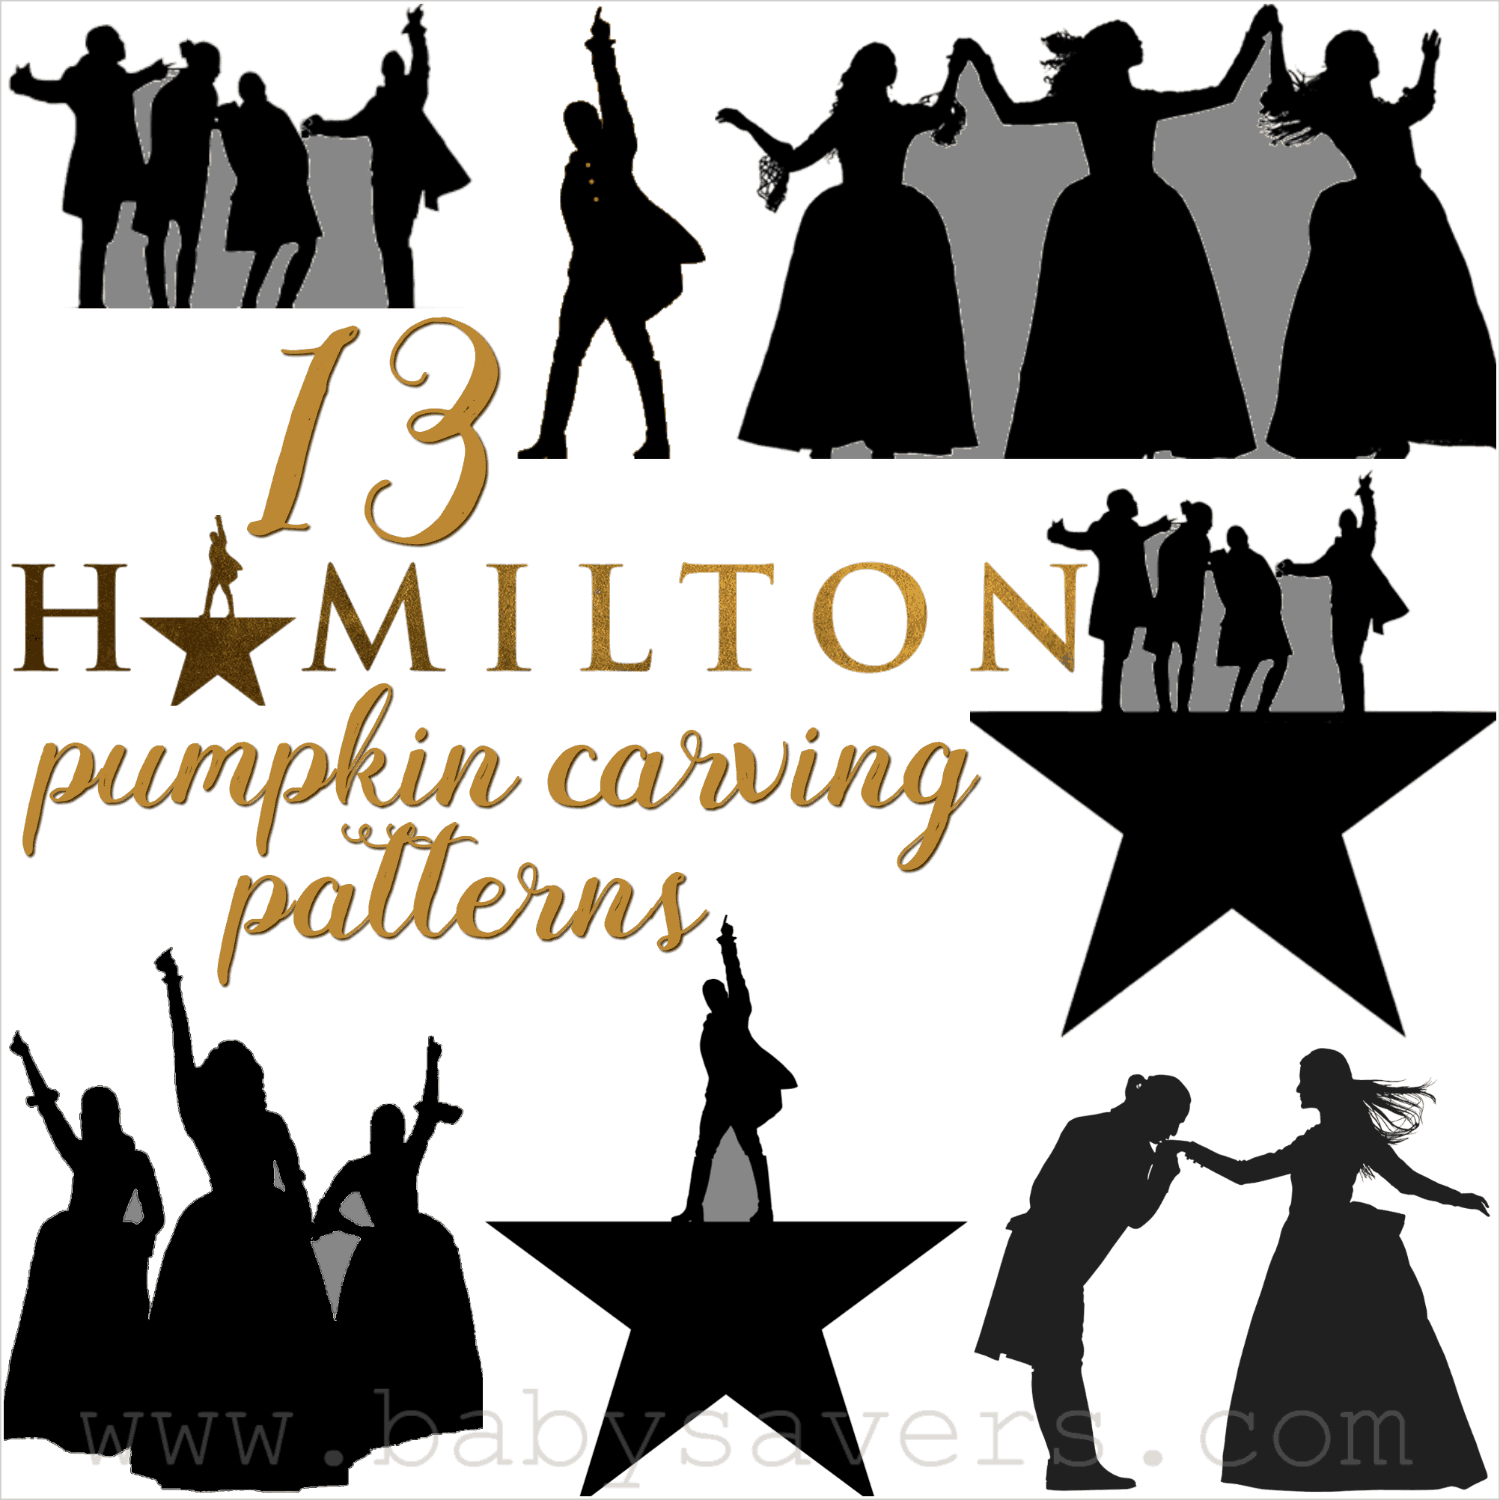 For Fans Of Broadway S Hamilton Musical Get Hamilton Pumpkin Carving Patterns With Alexander Hamilto Hamilton Musical Pumpkin Carving Patterns Pumpkin Carving